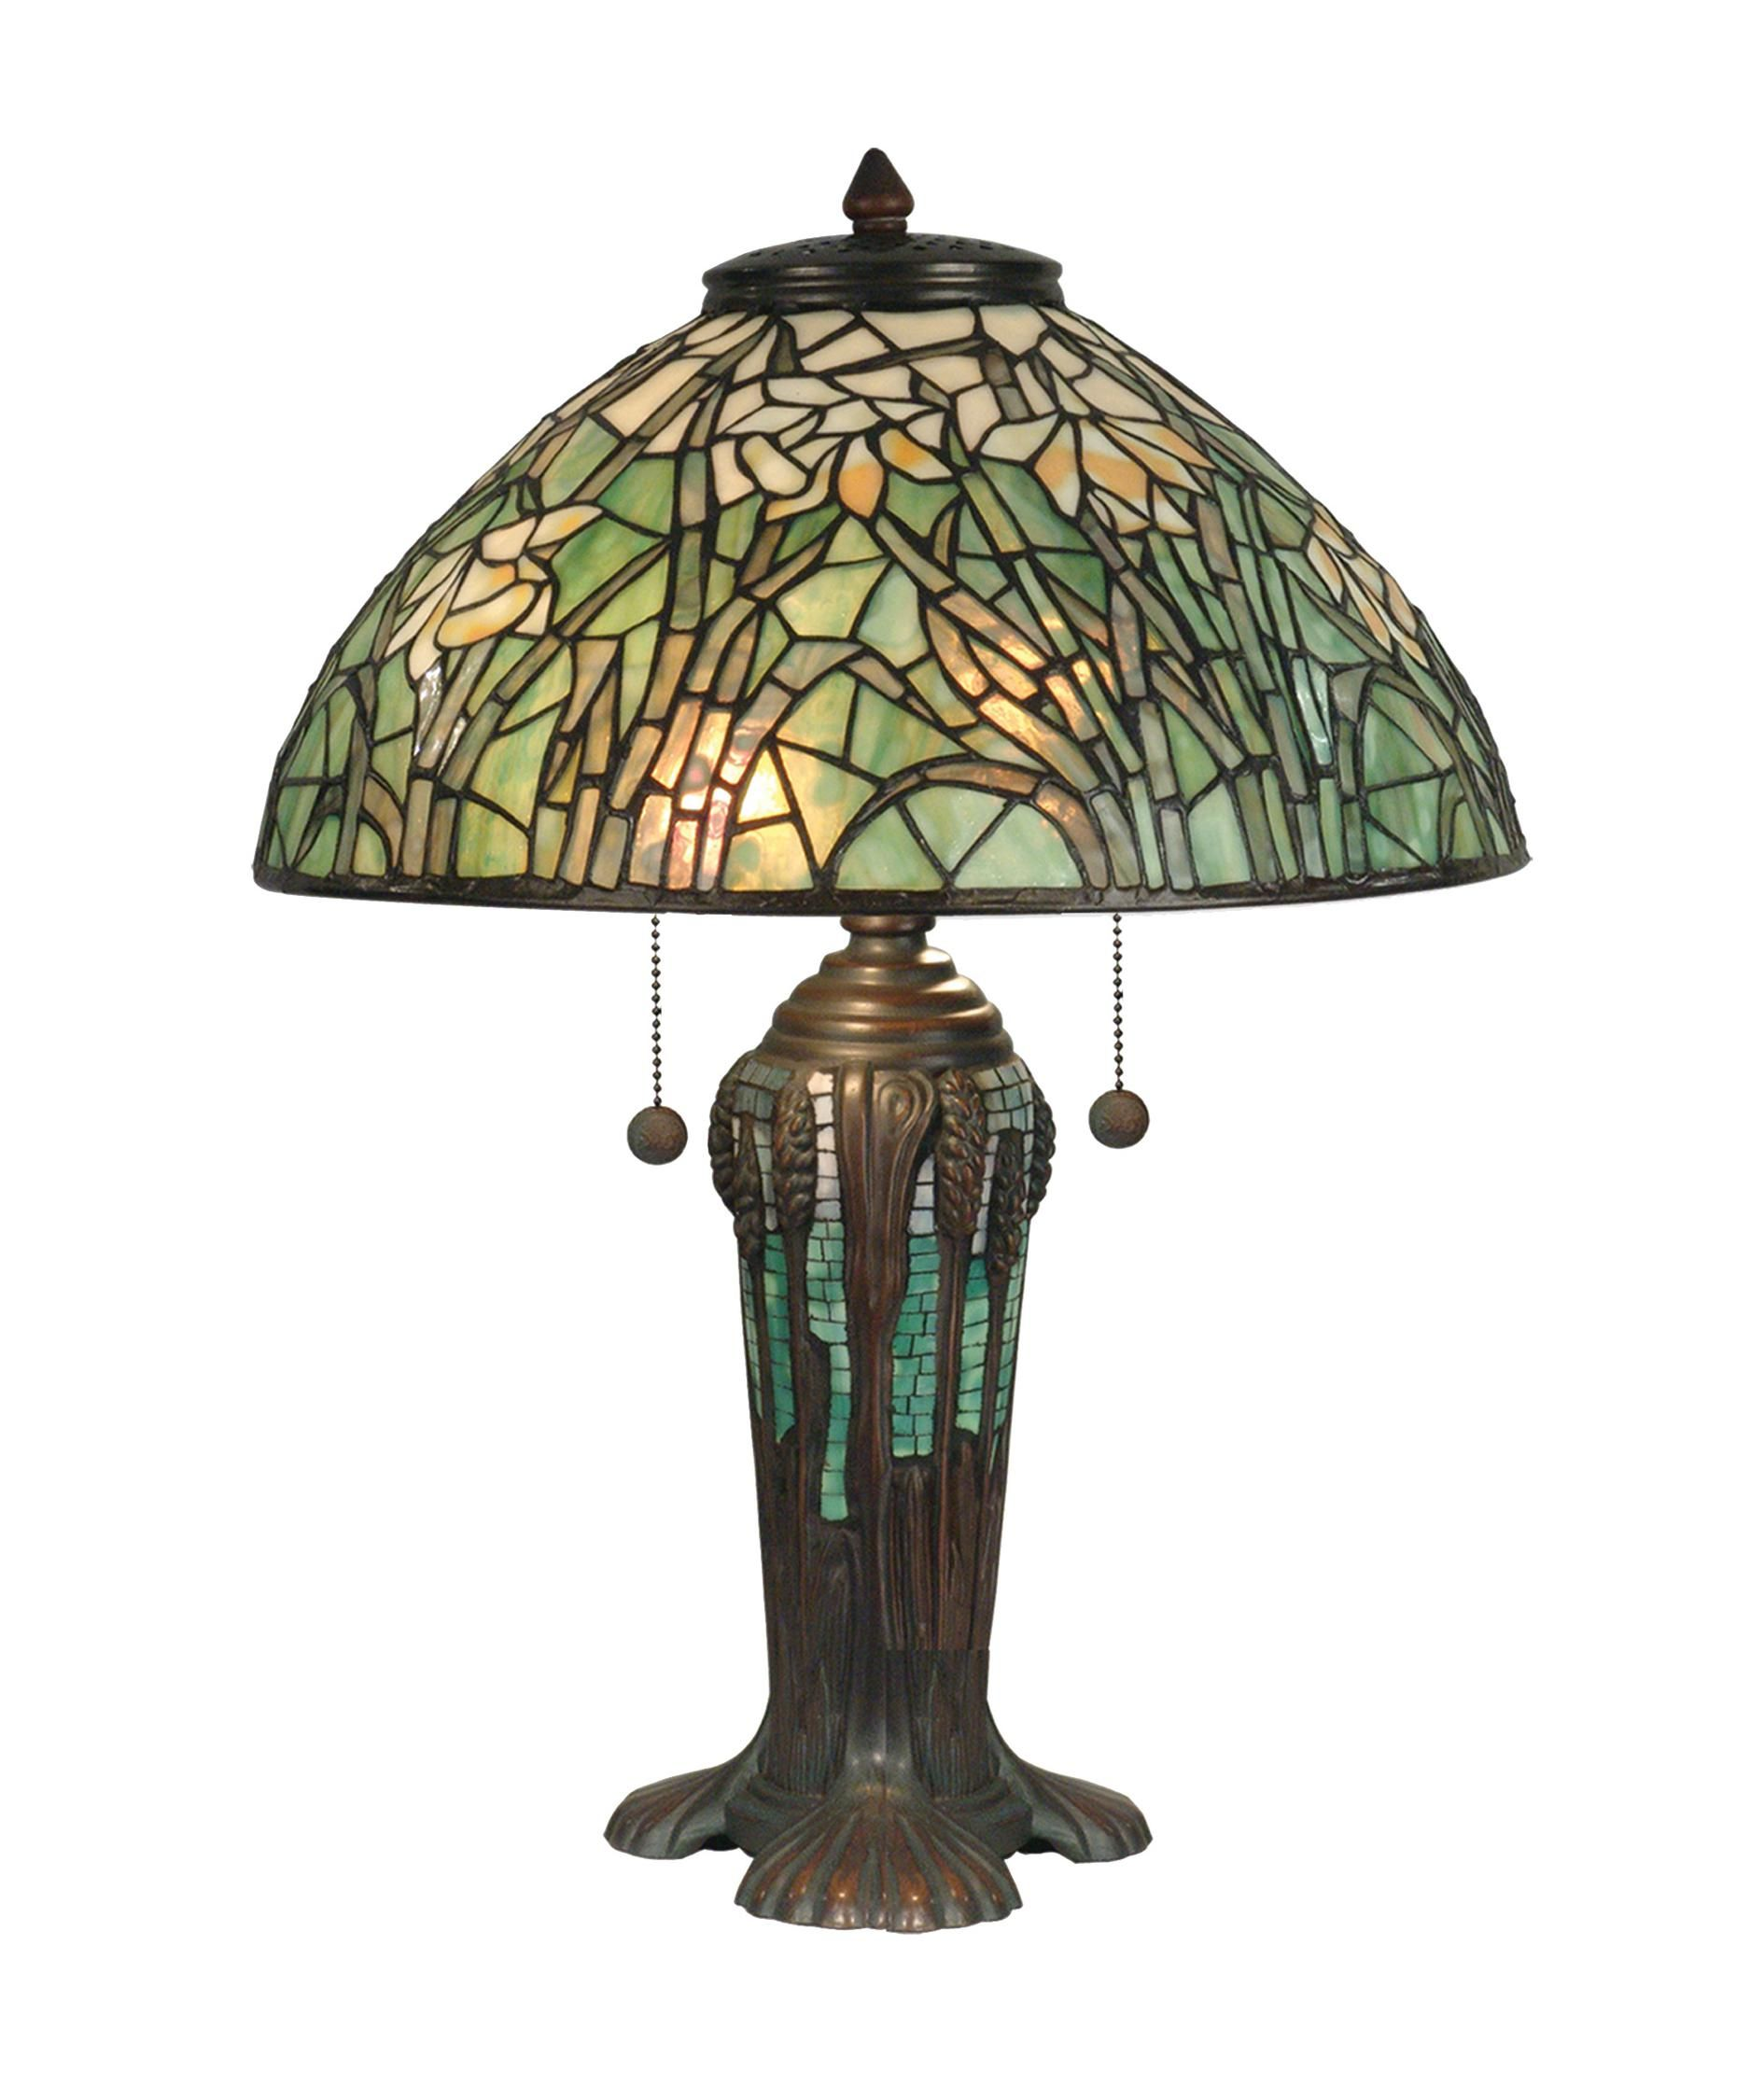 Shown in antique bronze verde green finish and hand rolled art glass accessories divine picture of home lighting decoration using dome light green flower stained glass dale tiffany lamp shades tiffany lamp shade replacement aloadofball Image collections